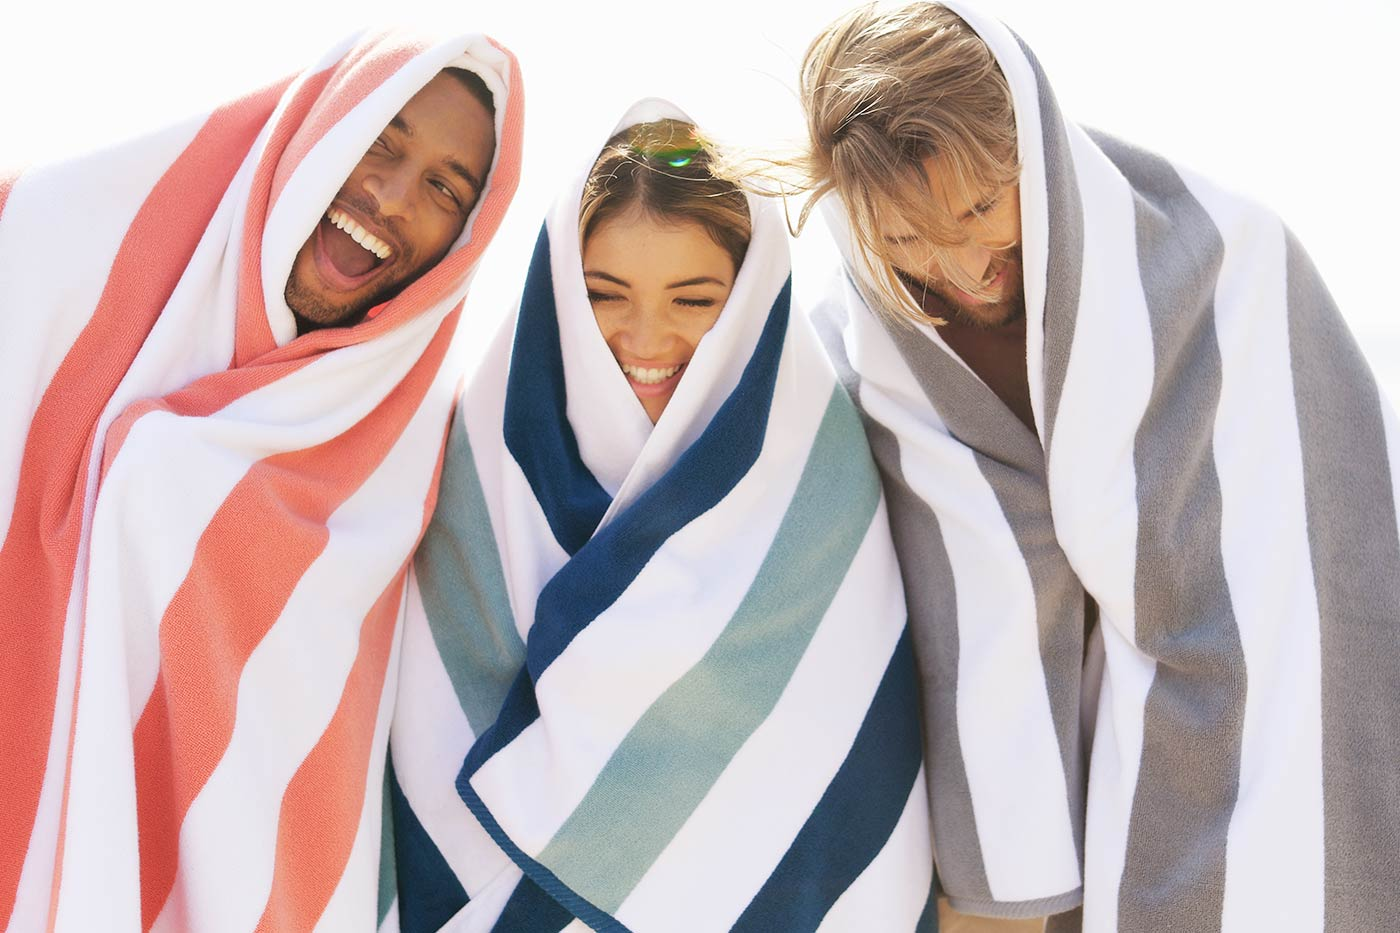 Three friends wrapped in oversized luxury cabana beach towels in coral pink, blue, teal, and gray.